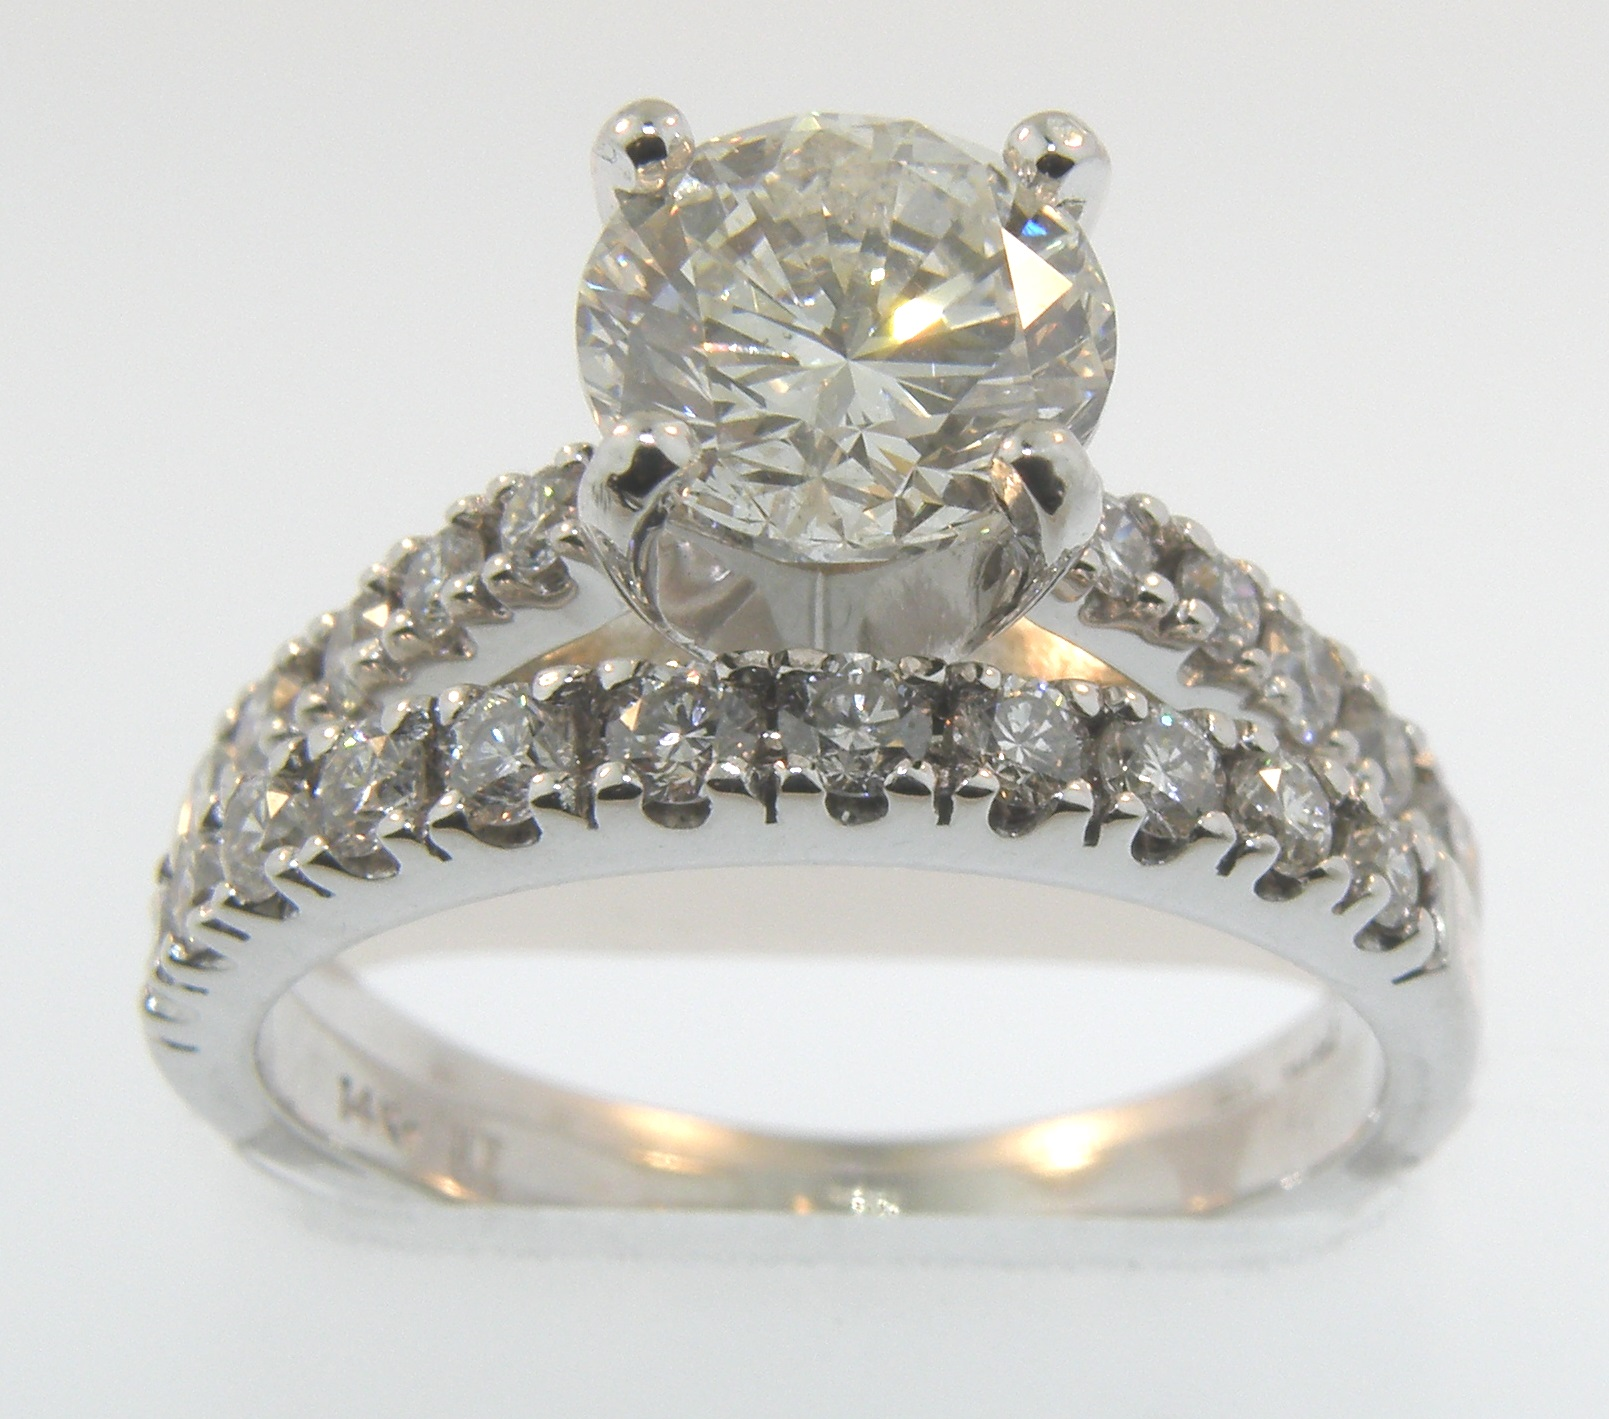 2.07 Carats Total Weight Engagement Set